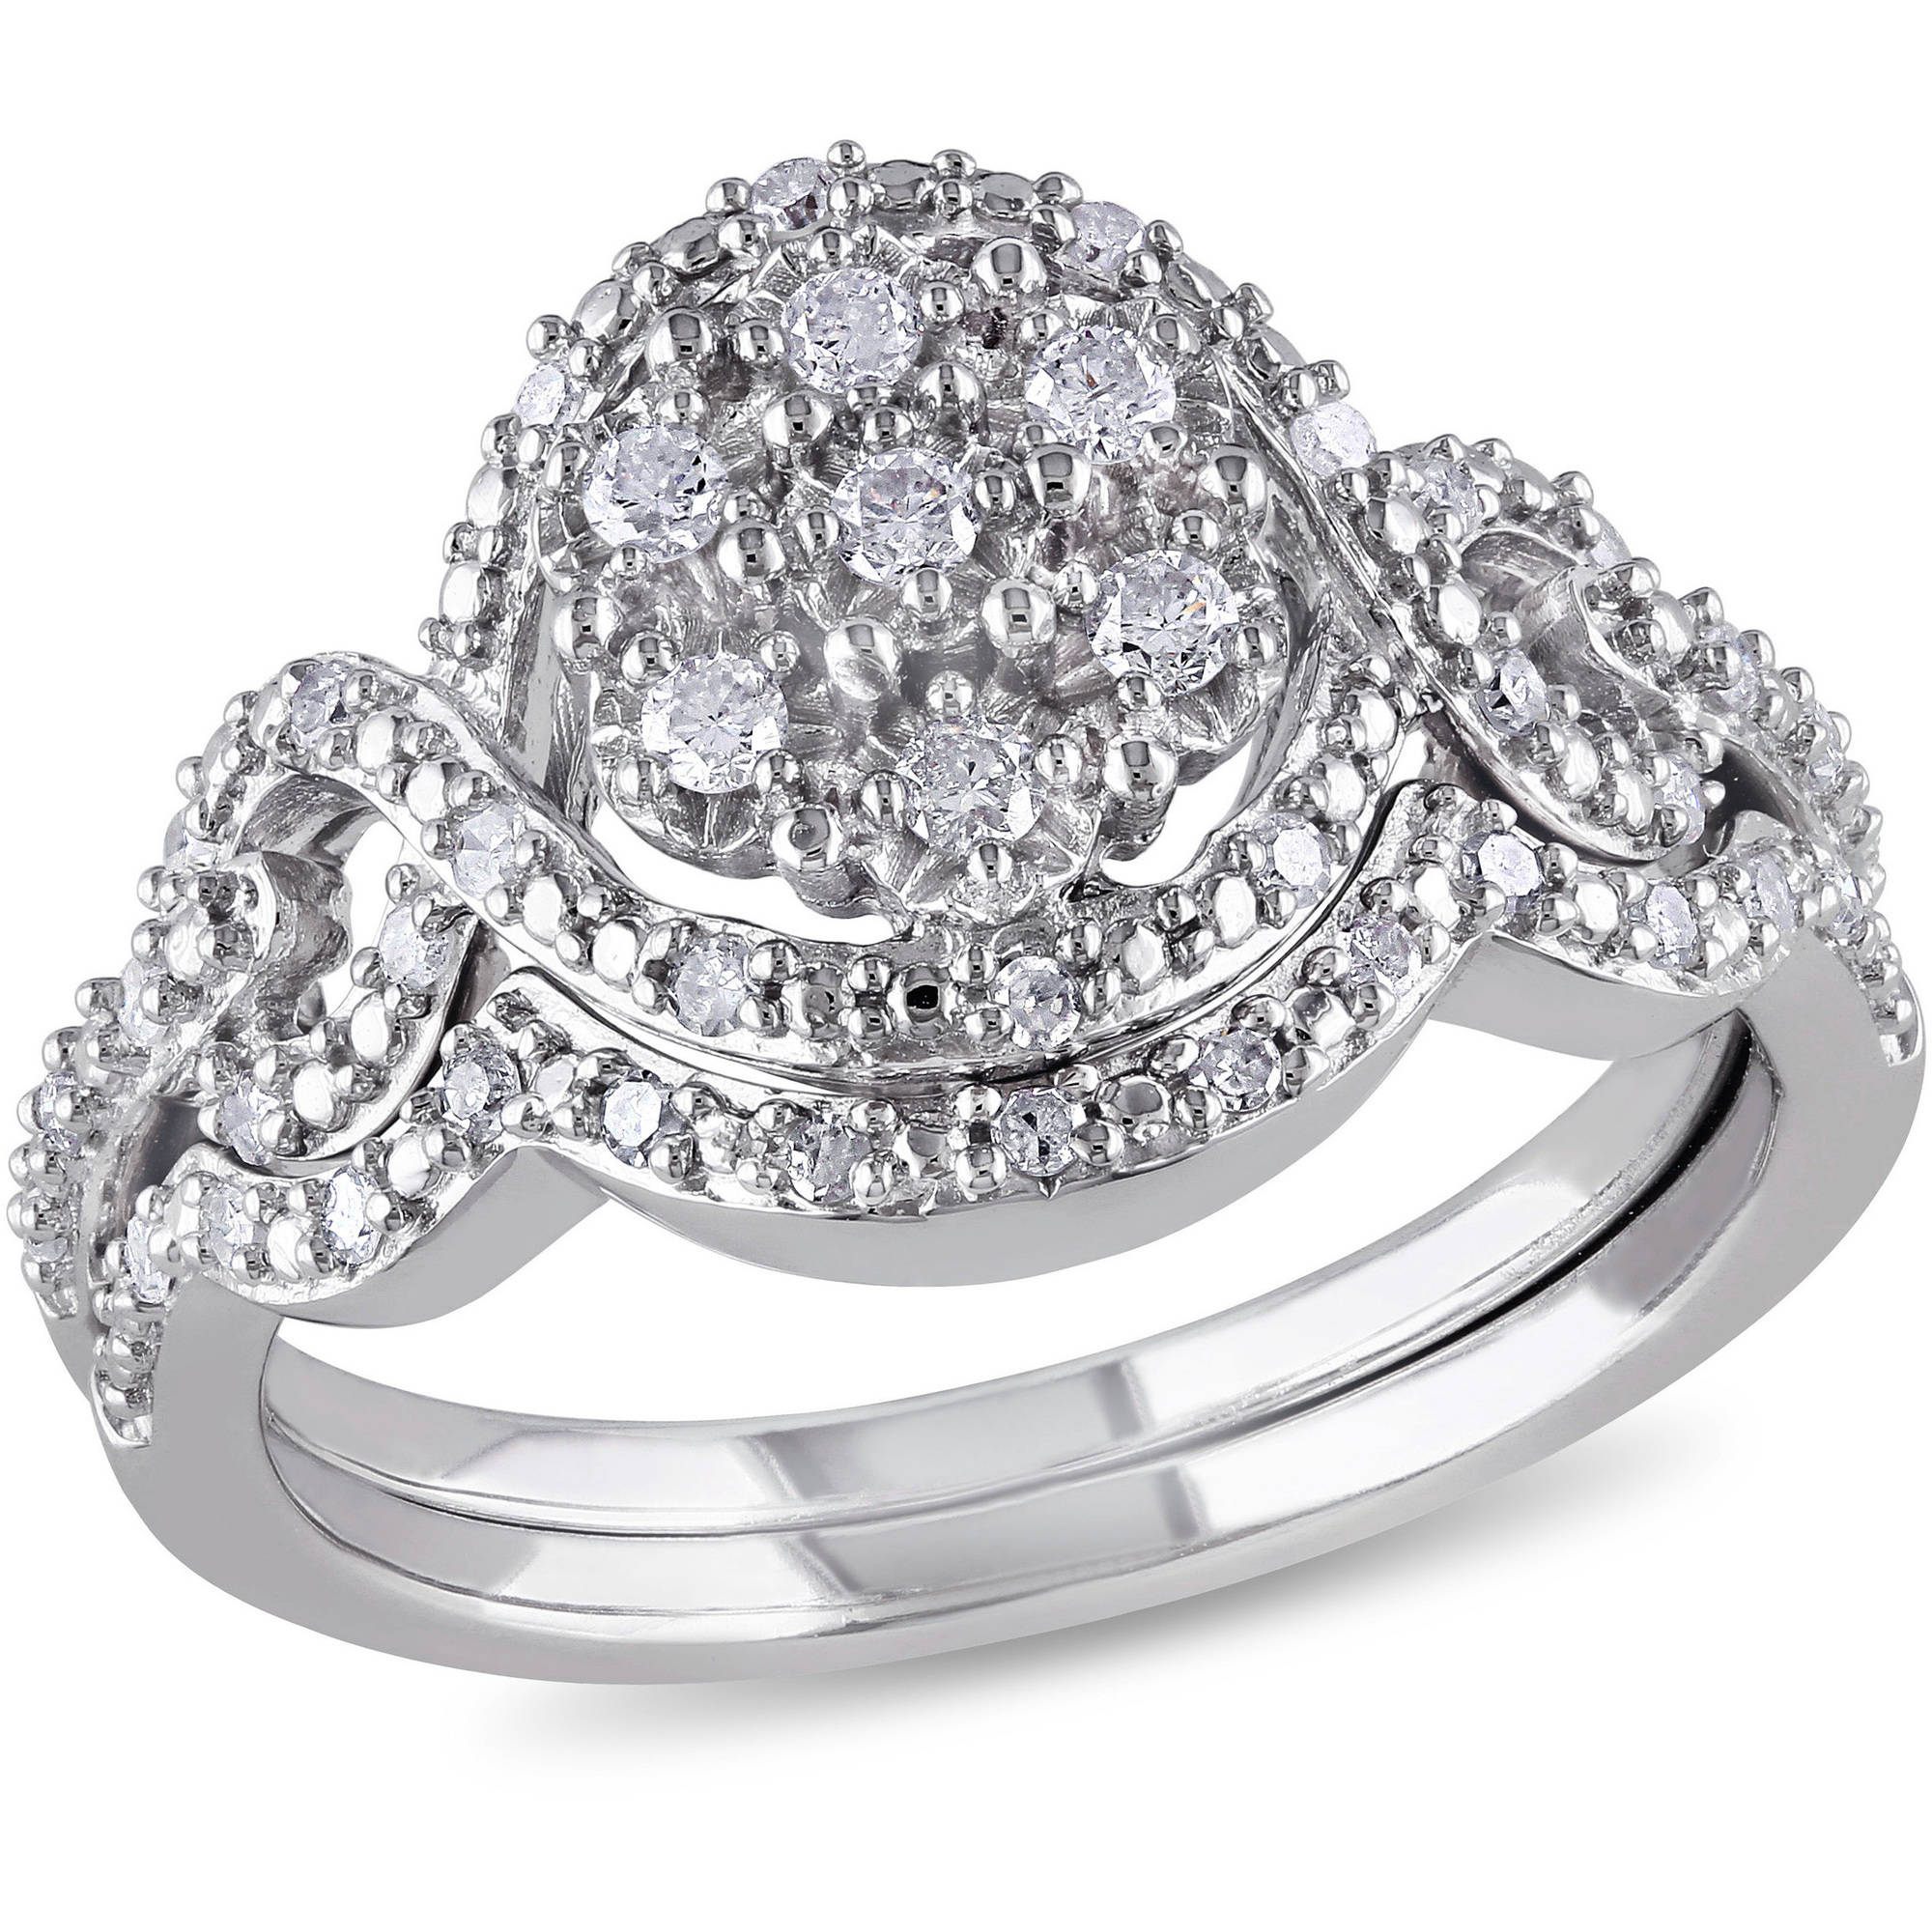 Miabella 1/3 Carat T.W. Diamond Sterling Silver Bridal Set